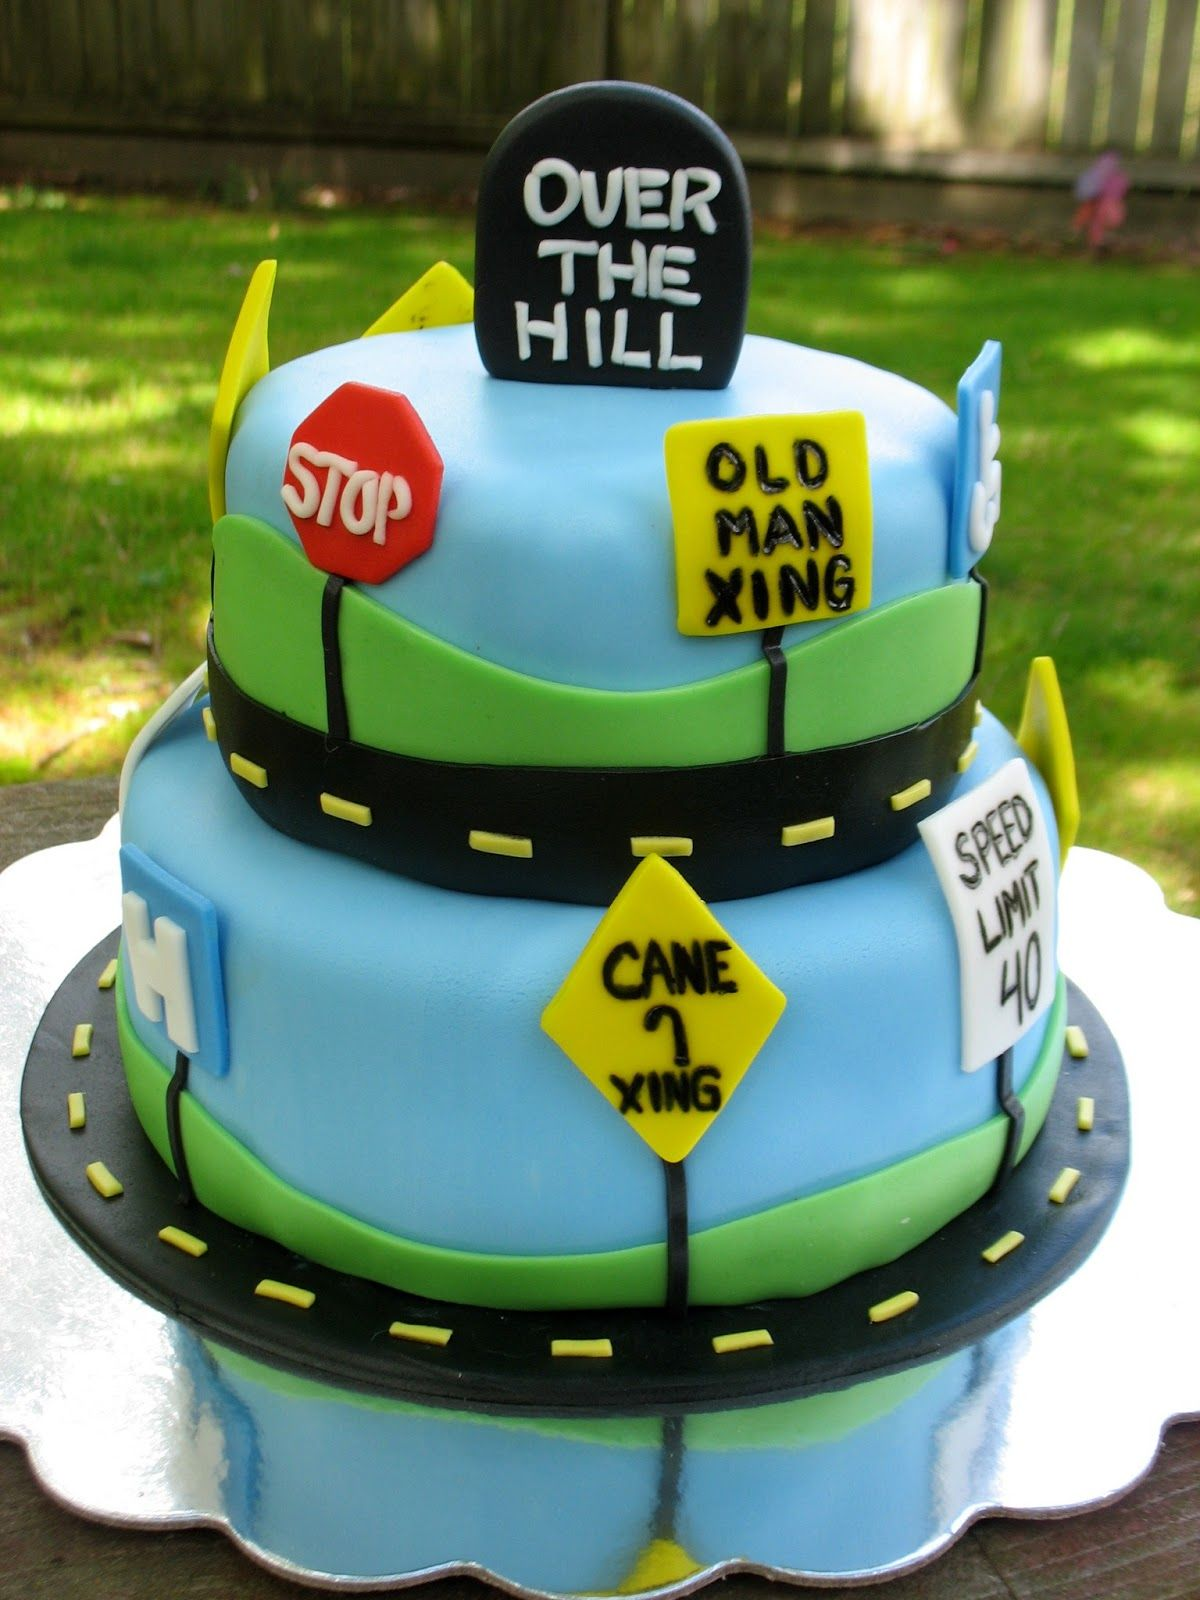 Creative Cakes by Christy Over the Hill cake Dessert Yummy Cute